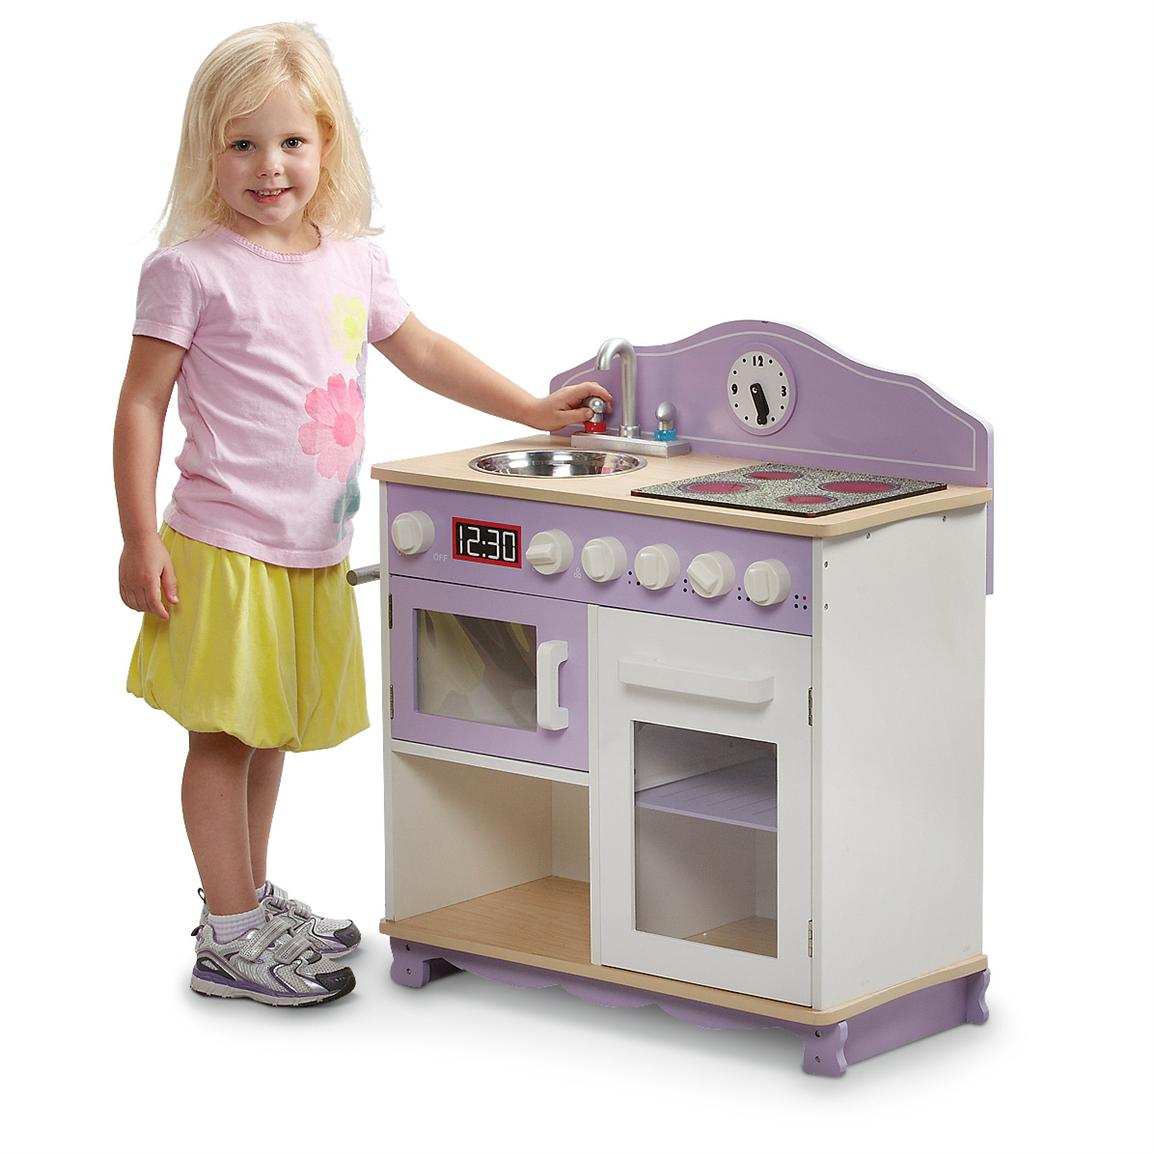 My Little Play Kitchen, Purple • She'll love cooking up some fun in her very own Kitchen!